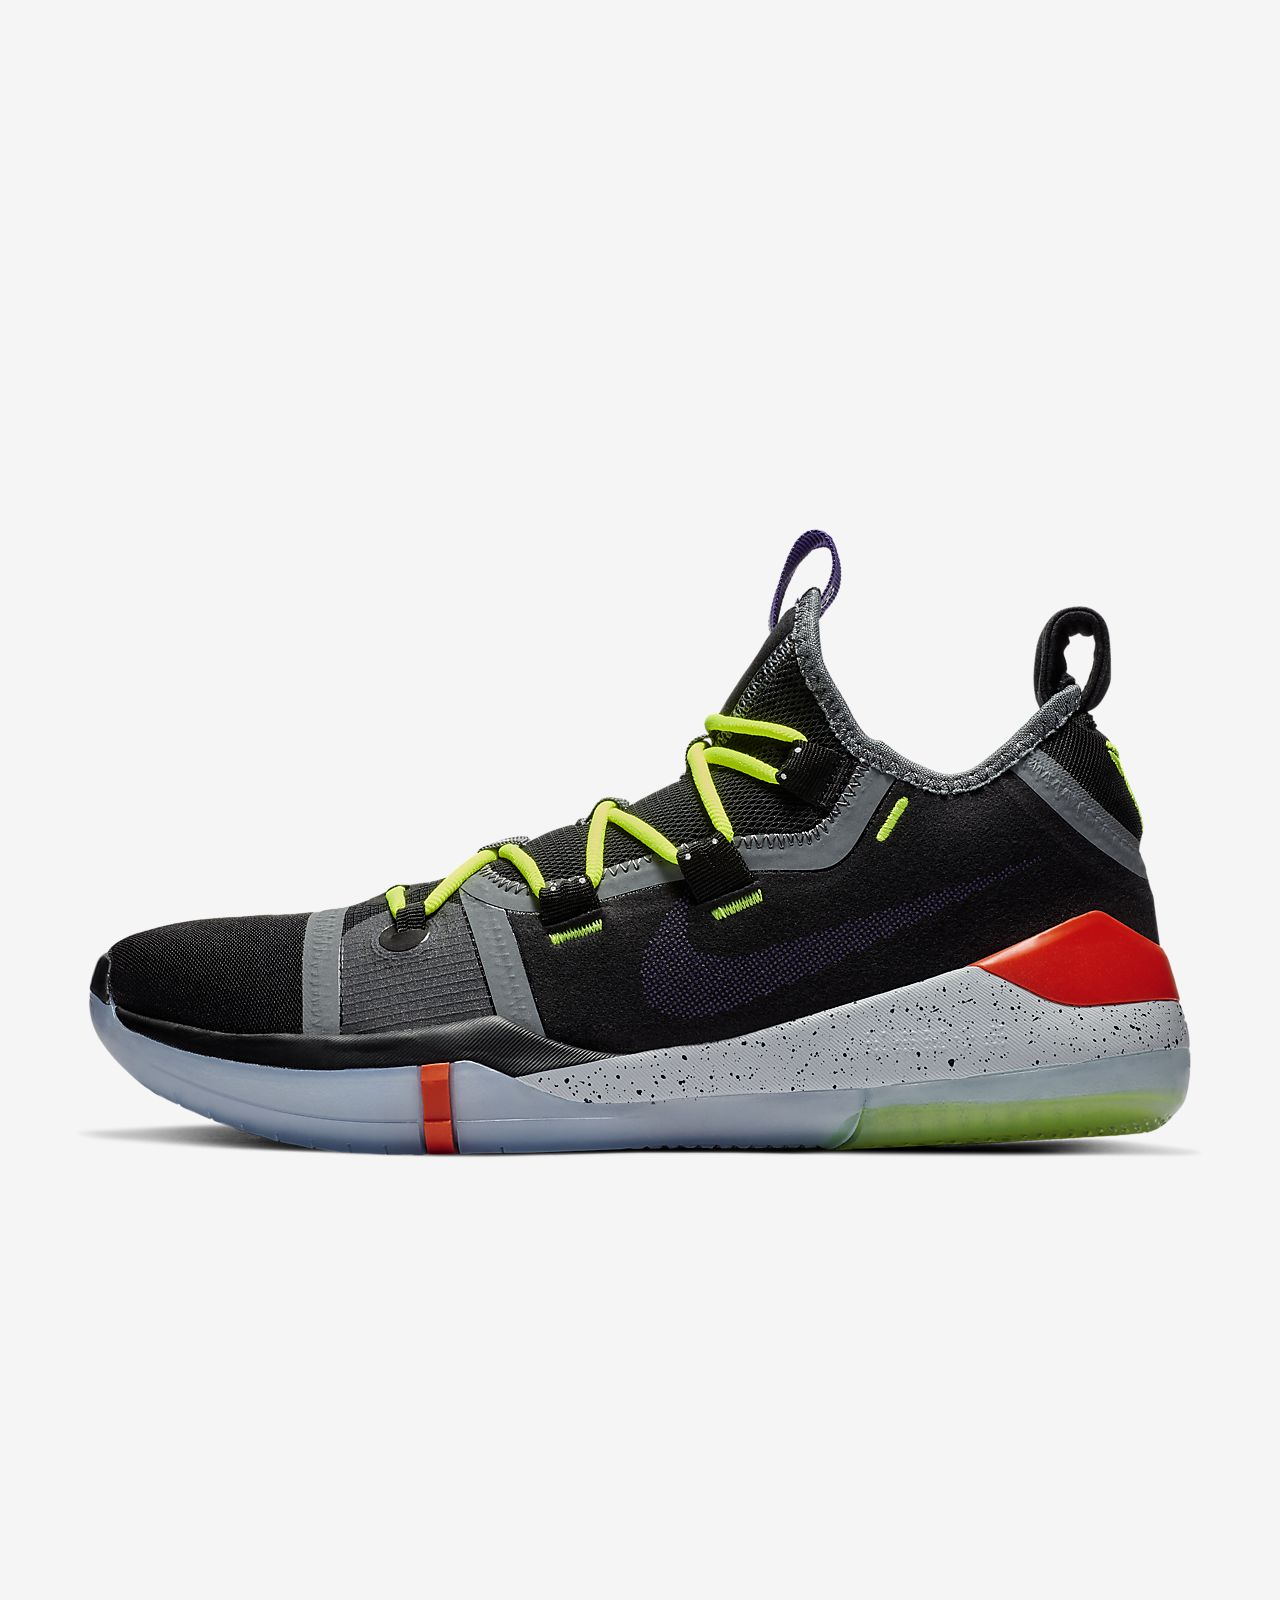 new product 1007d c0aac ... Chaussure de basketball Kobe AD